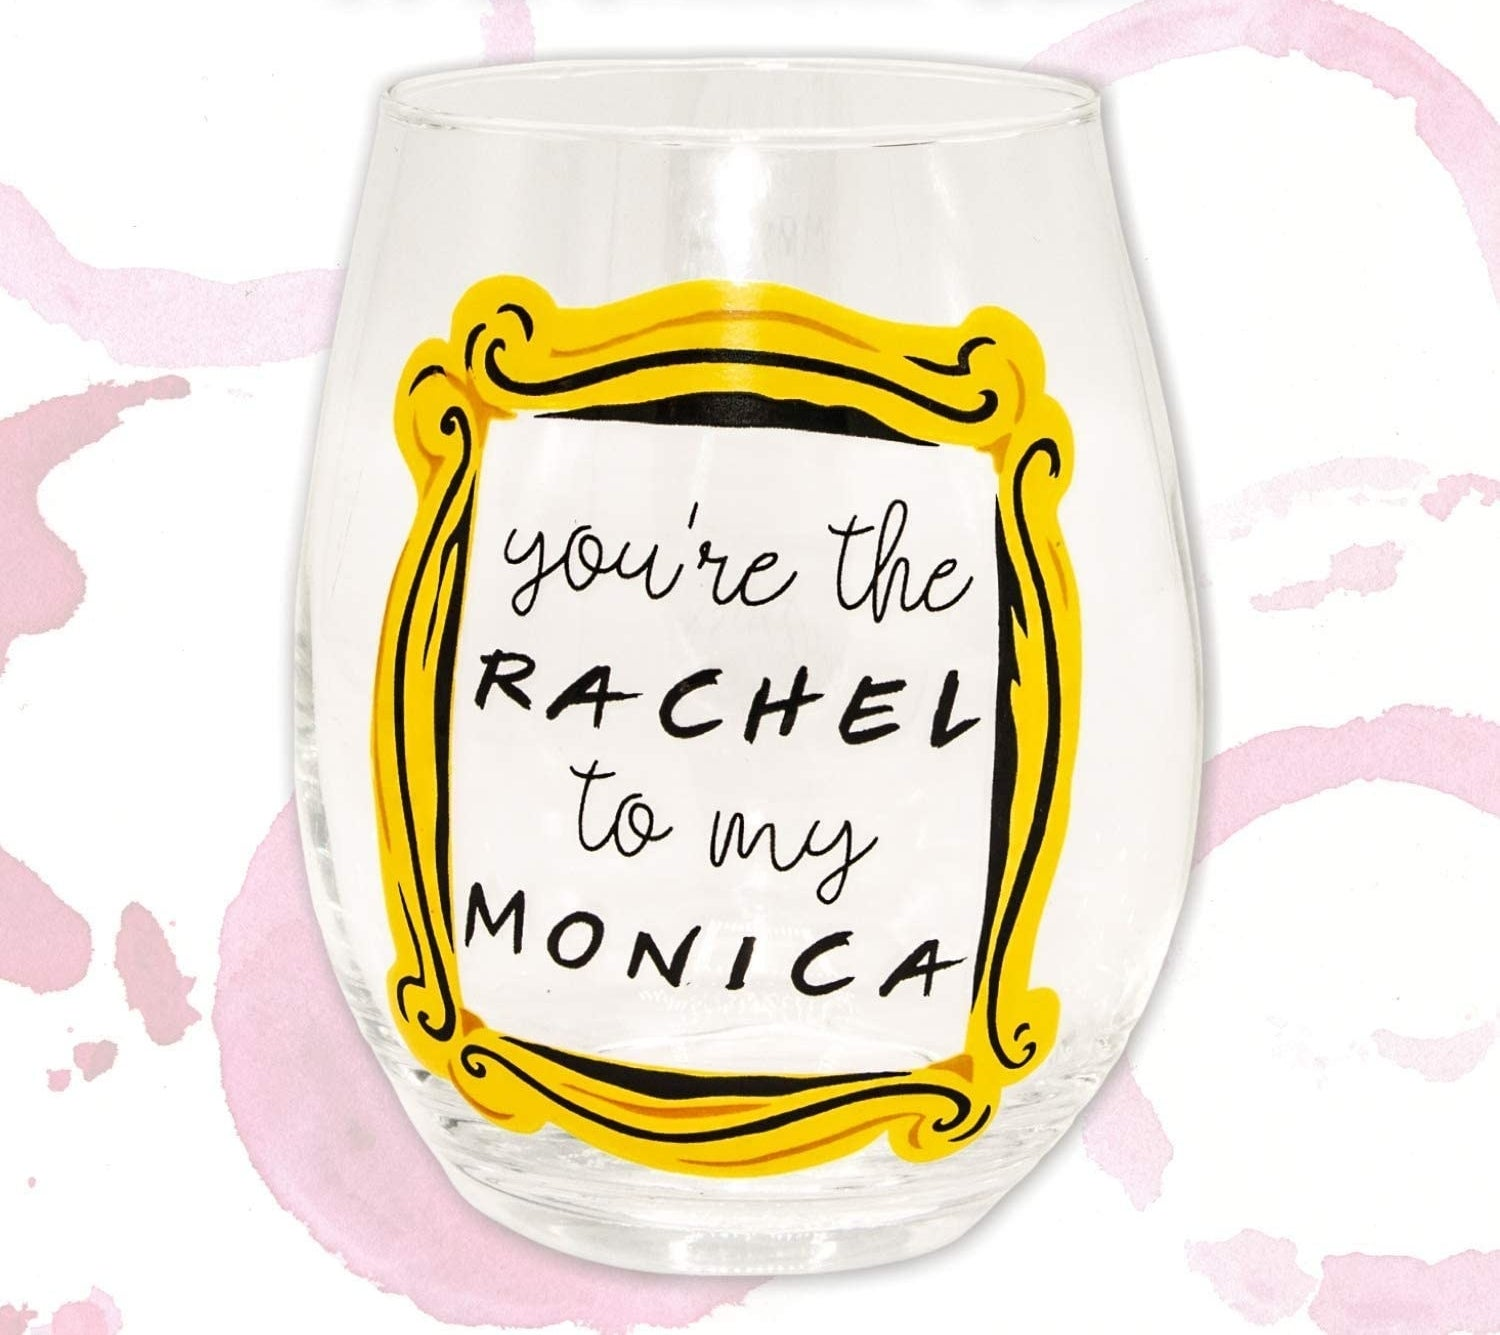 stemless wine glass that says you're the rachel to my monica